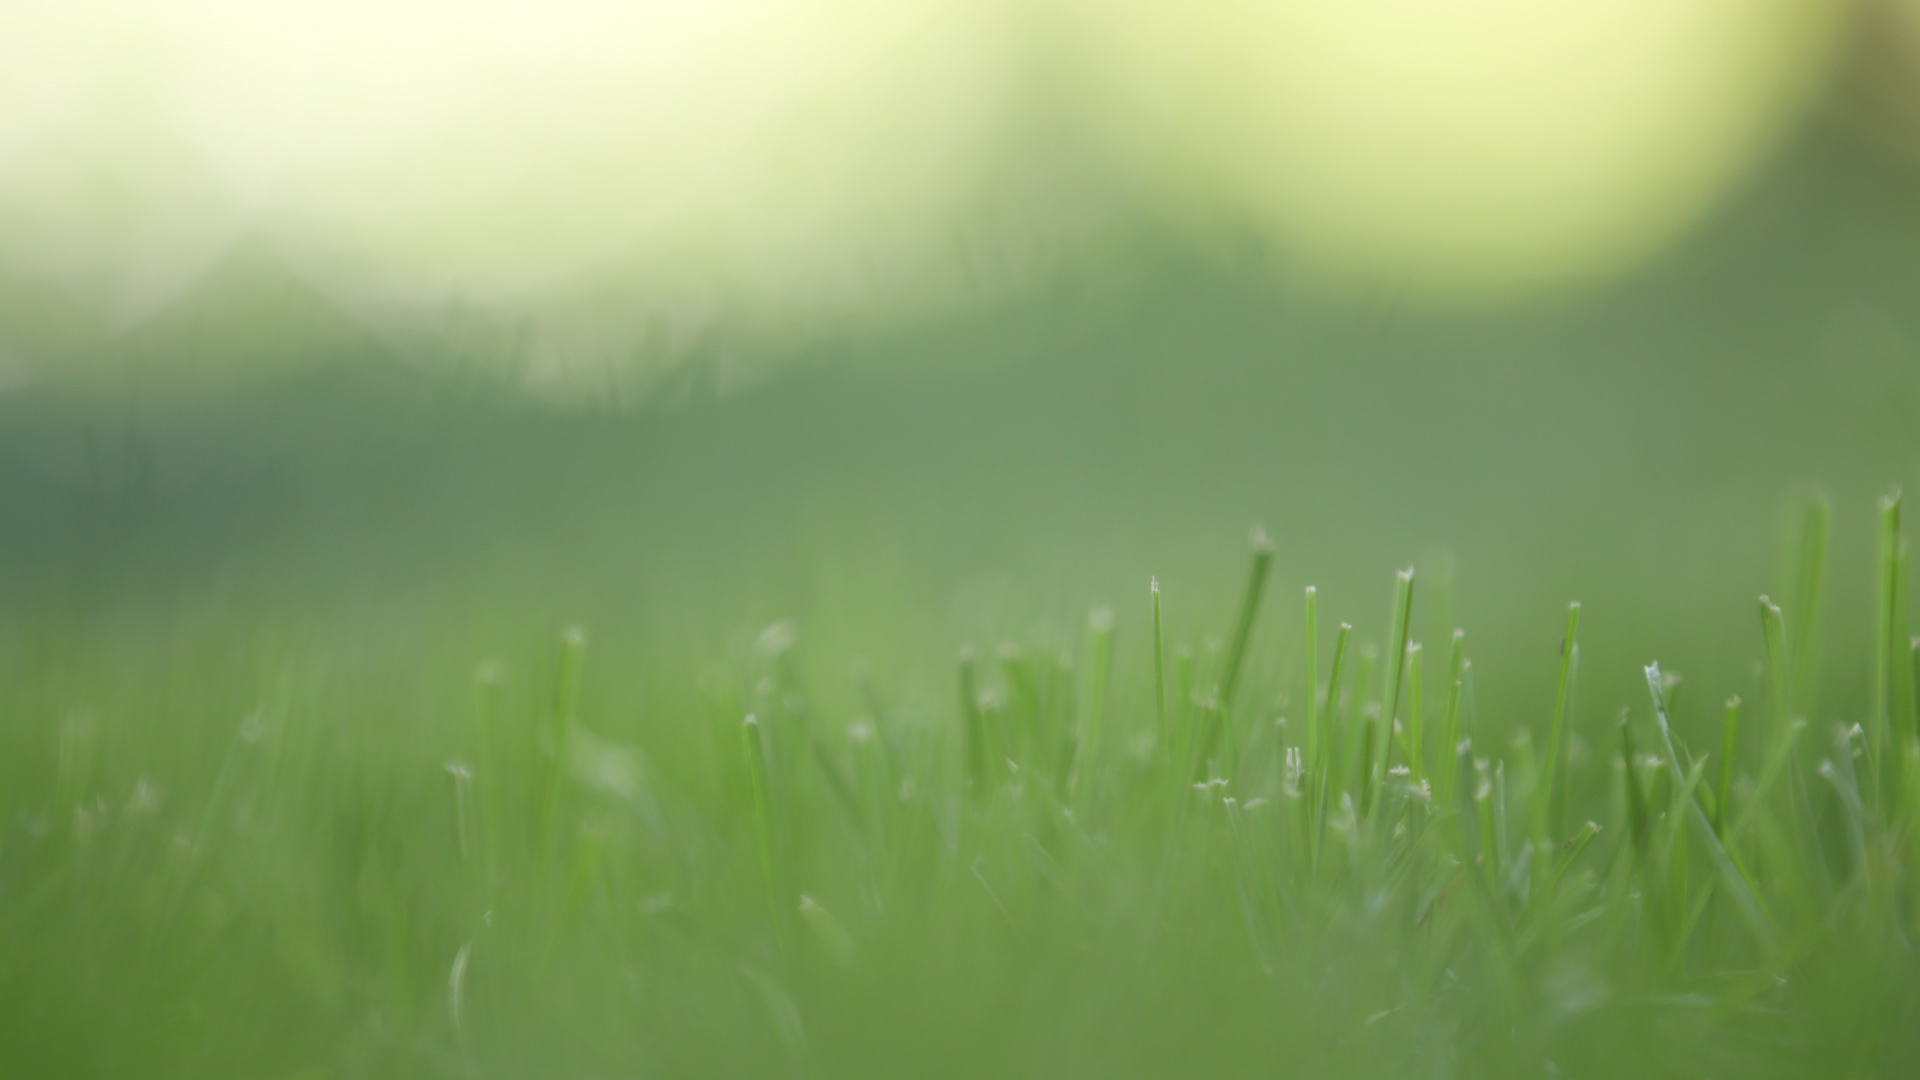 On this picture you can see dew collecting on grass.